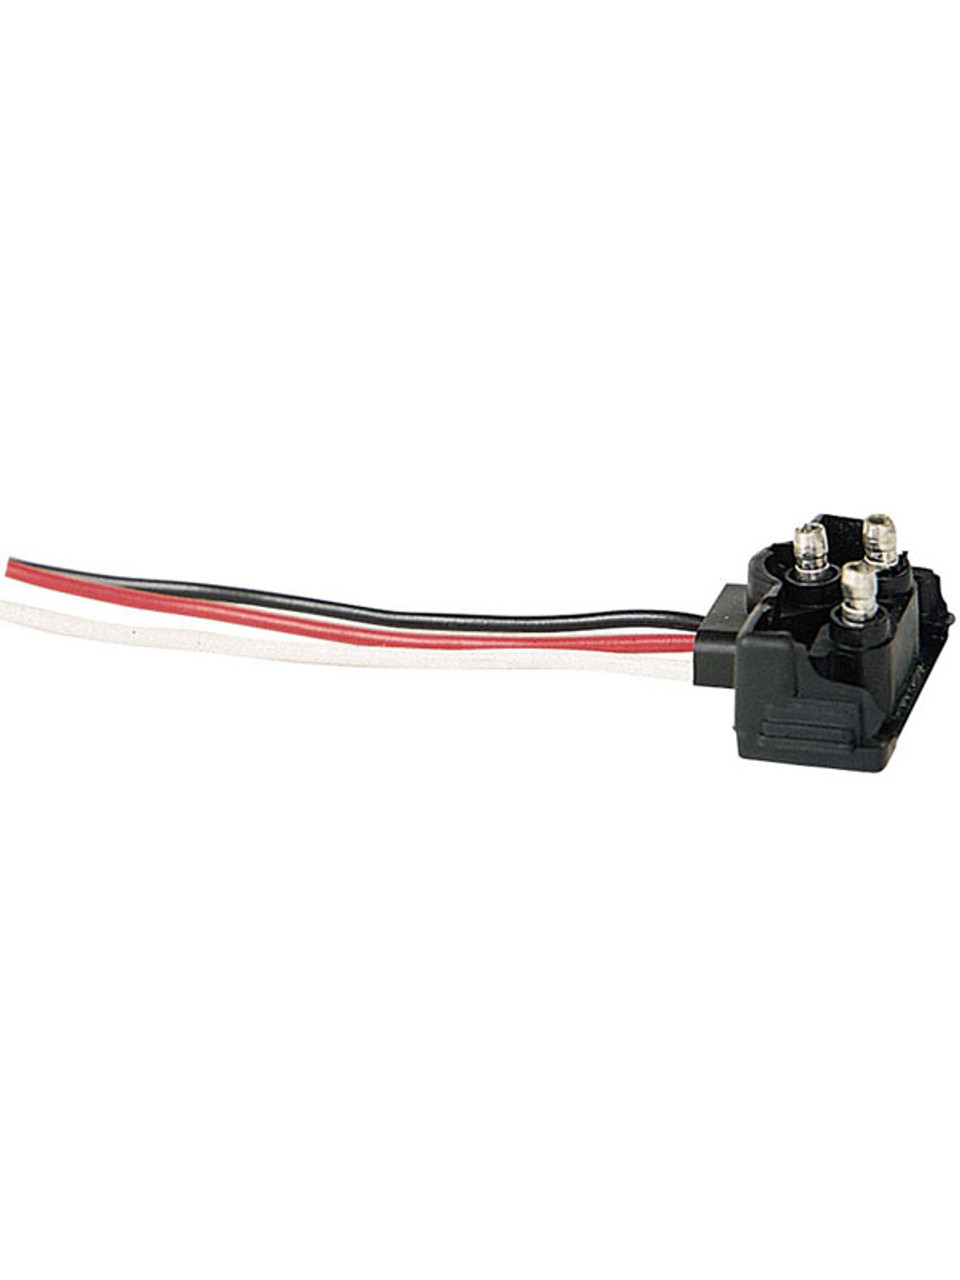 421-491 --- Peterson Replacement 3-Wire Right Angle Plug